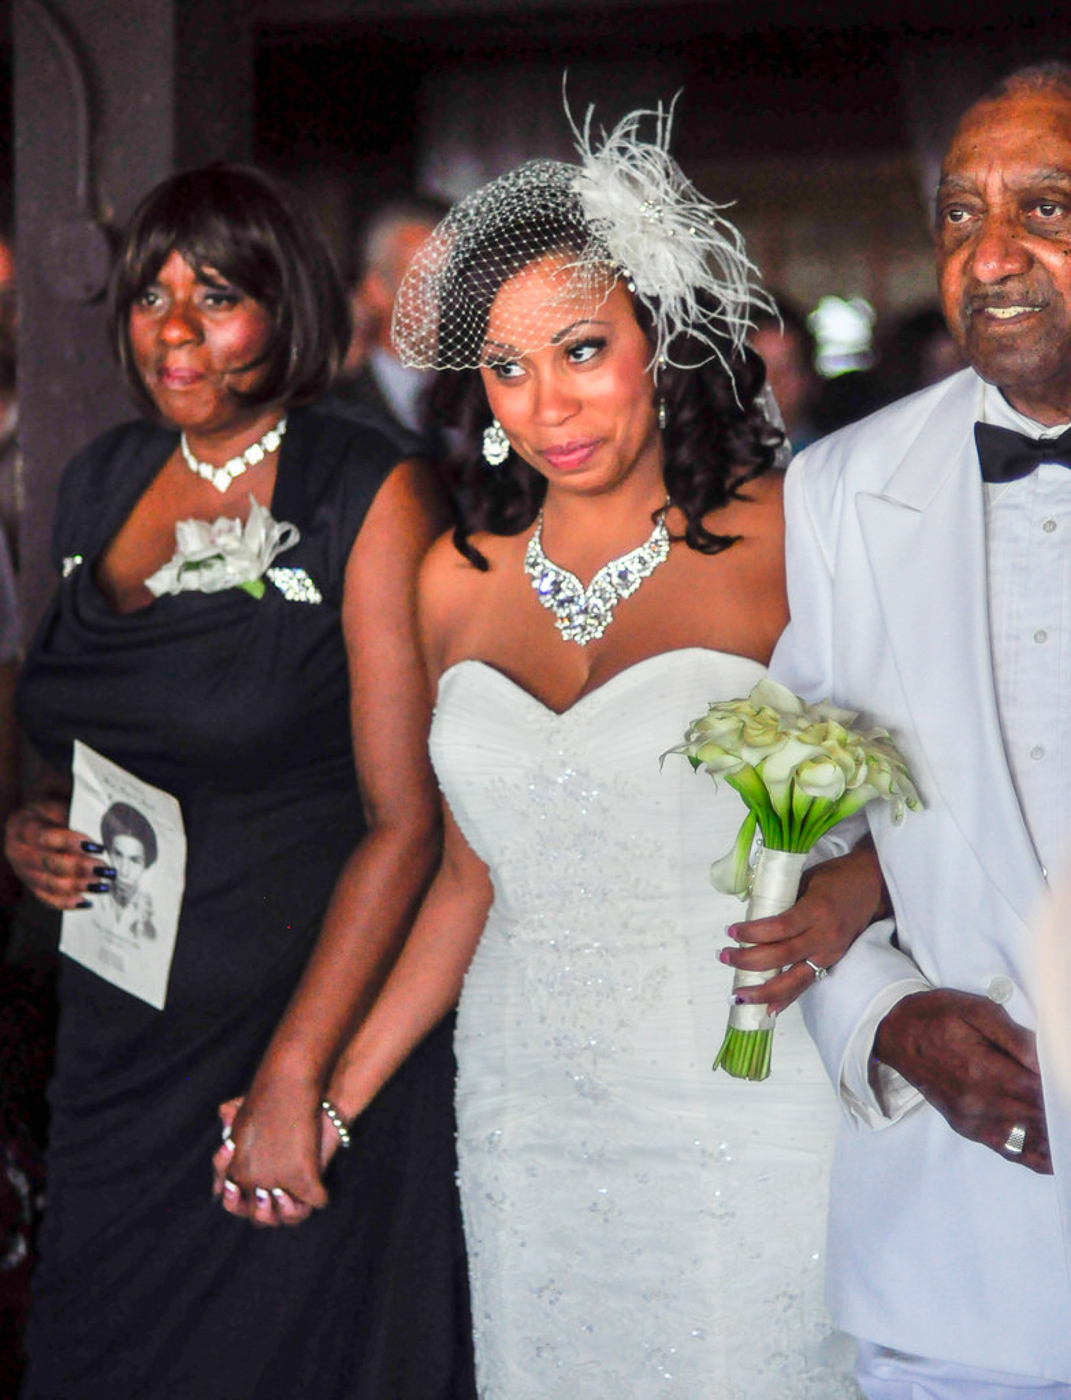 Mother and father walking bride down the aisle at orange county mining co